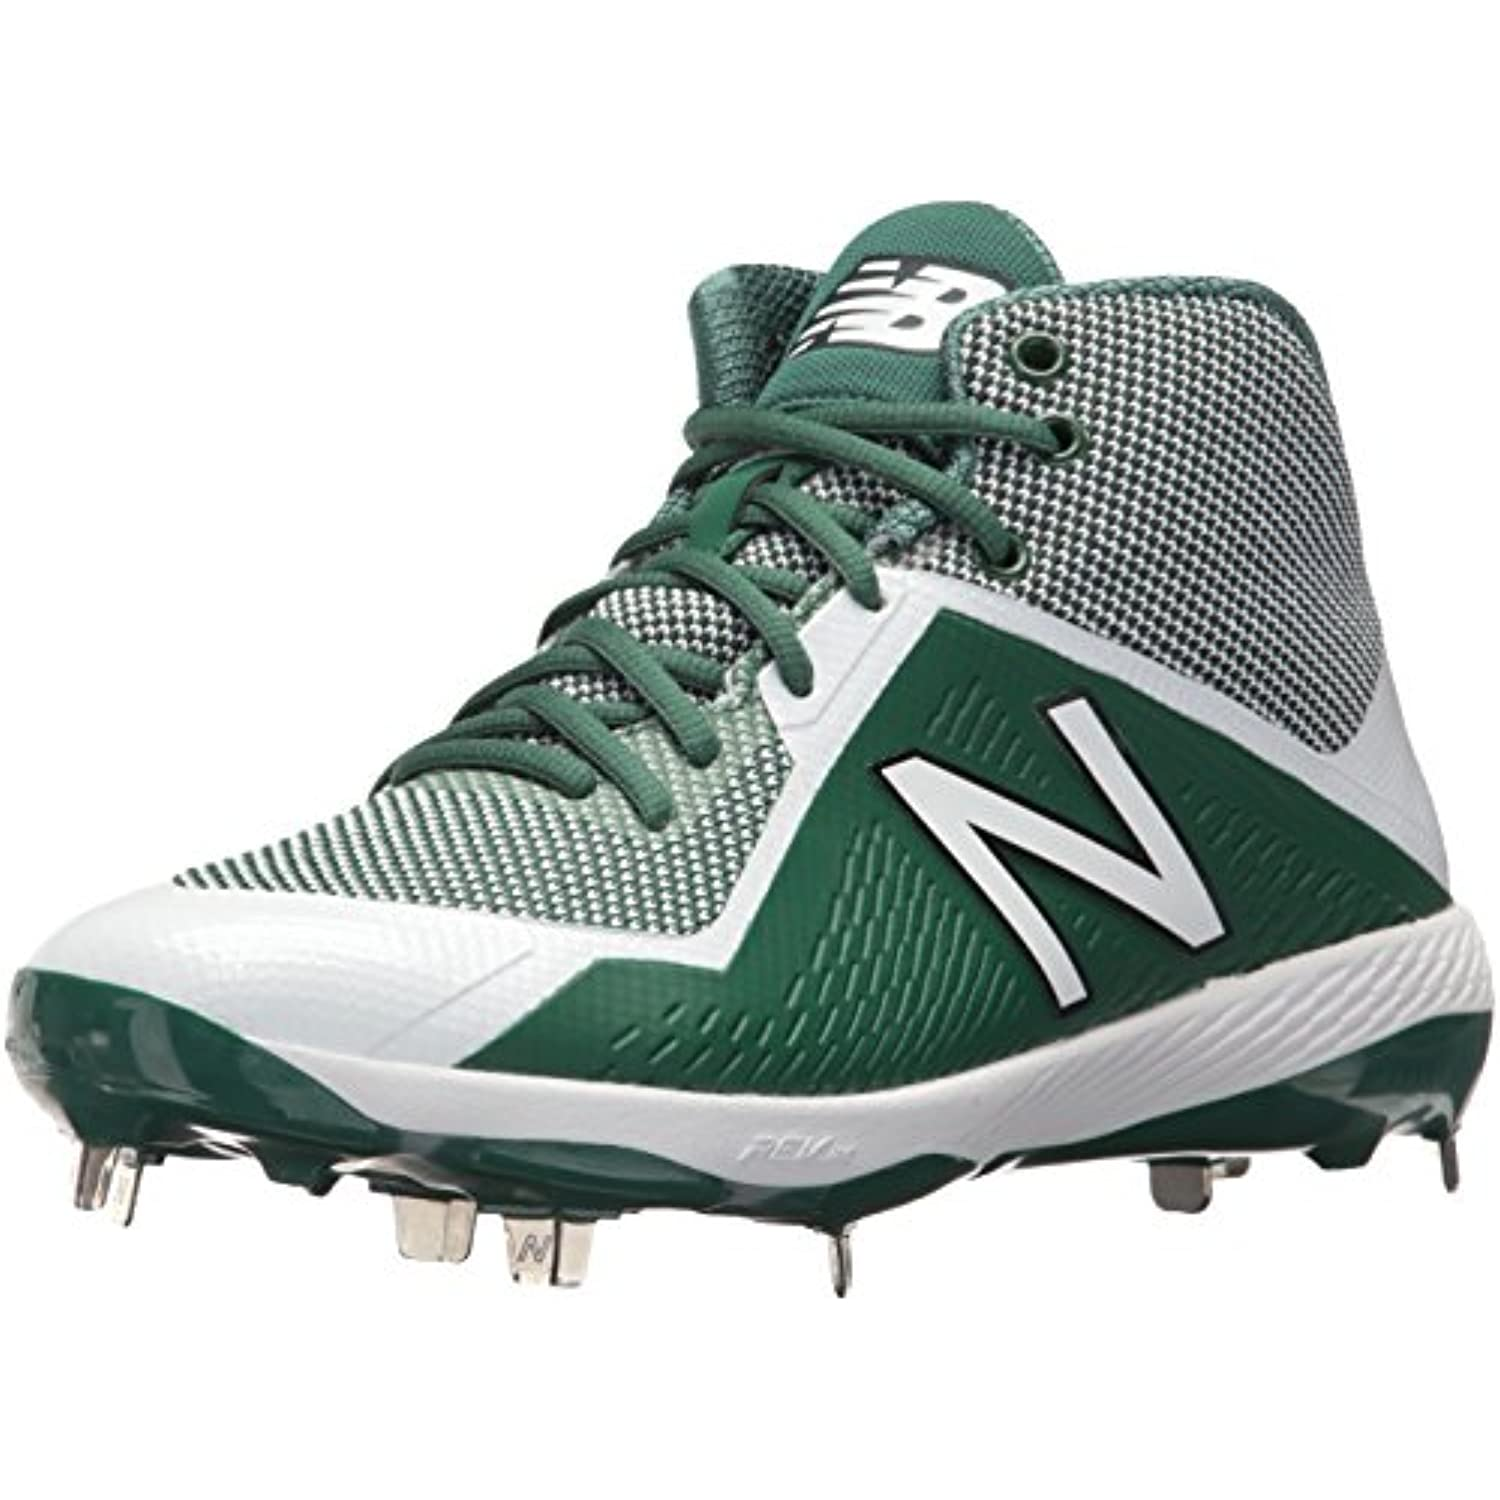 new products 8d208 2d69e New New New Balance4040V4 Mid Steel Spike - 4040v4 Mid Steel Spike Homme -  B01NB9X1S5 - b1cf82